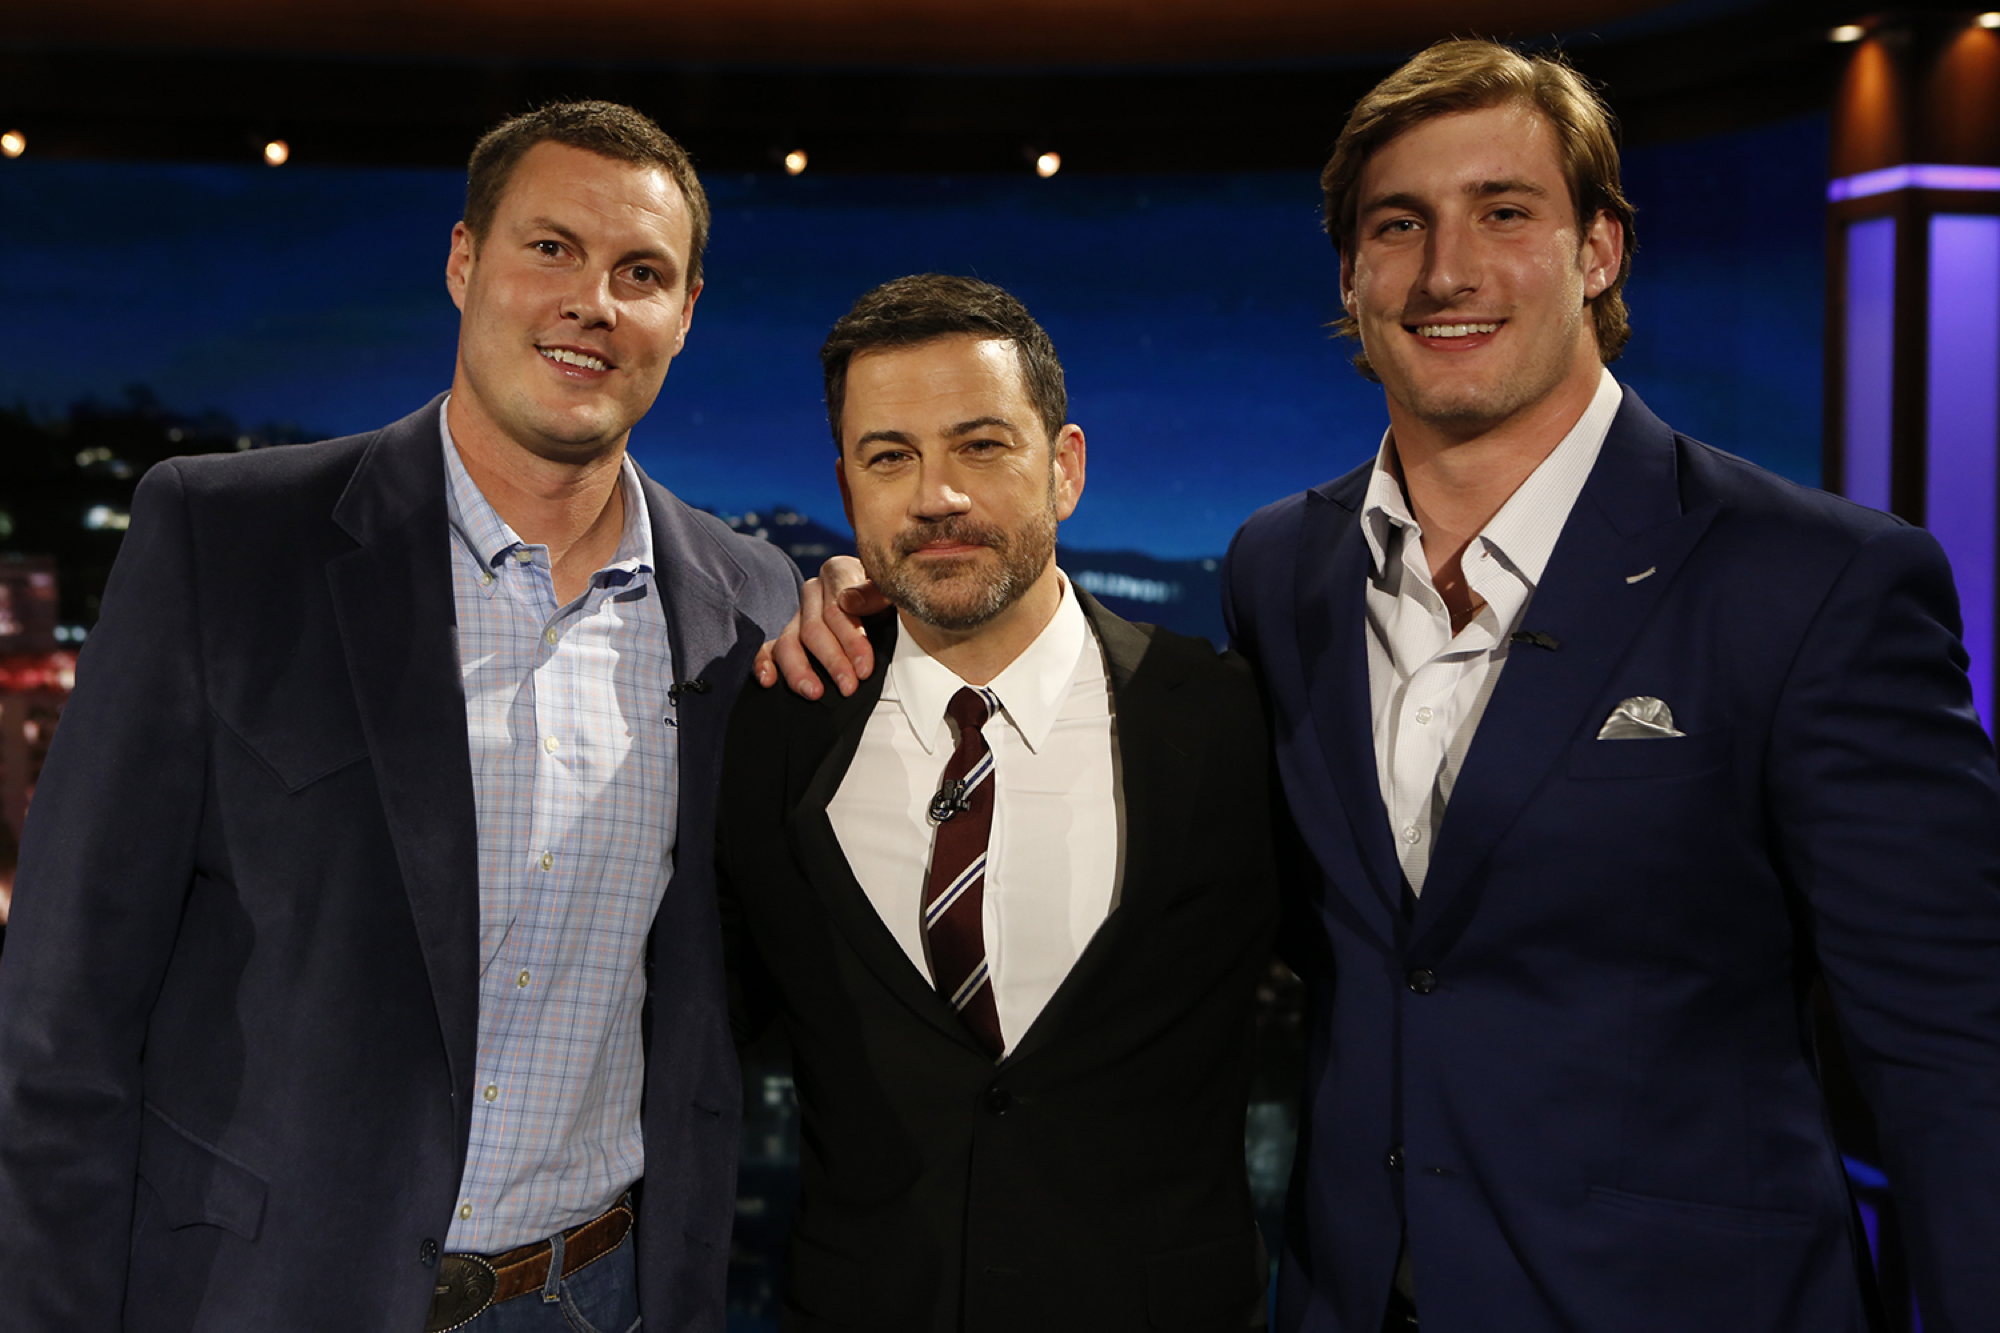 Sd-sp-joey-bosa-jimmy-kimmel-20170117